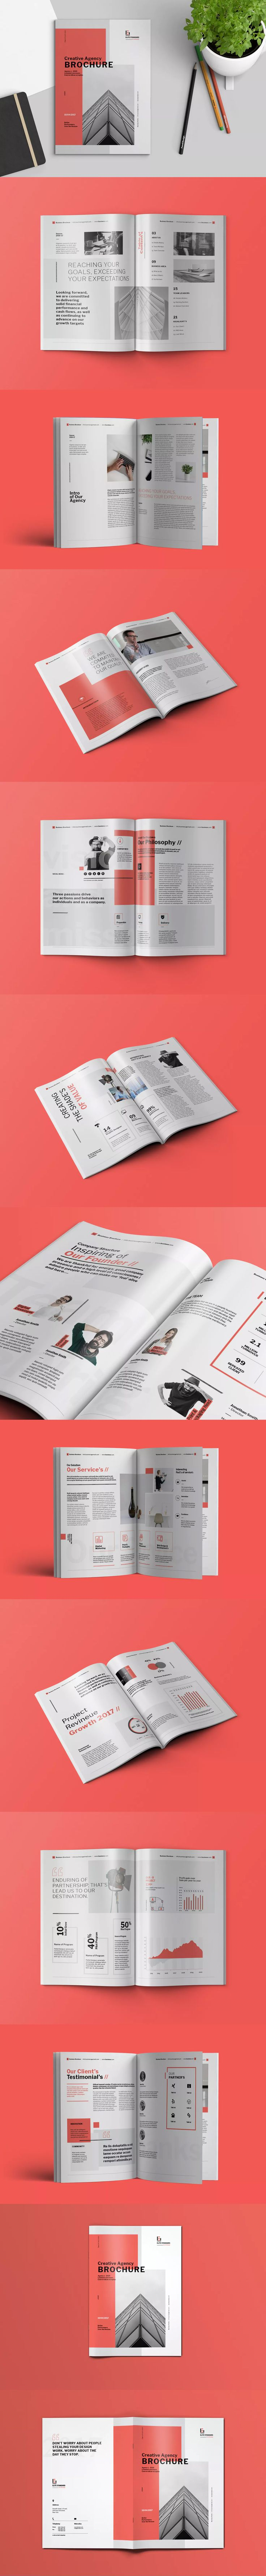 Business Brochure Template InDesign INDD - A4 and US Letter Size #unlimiteddownloads